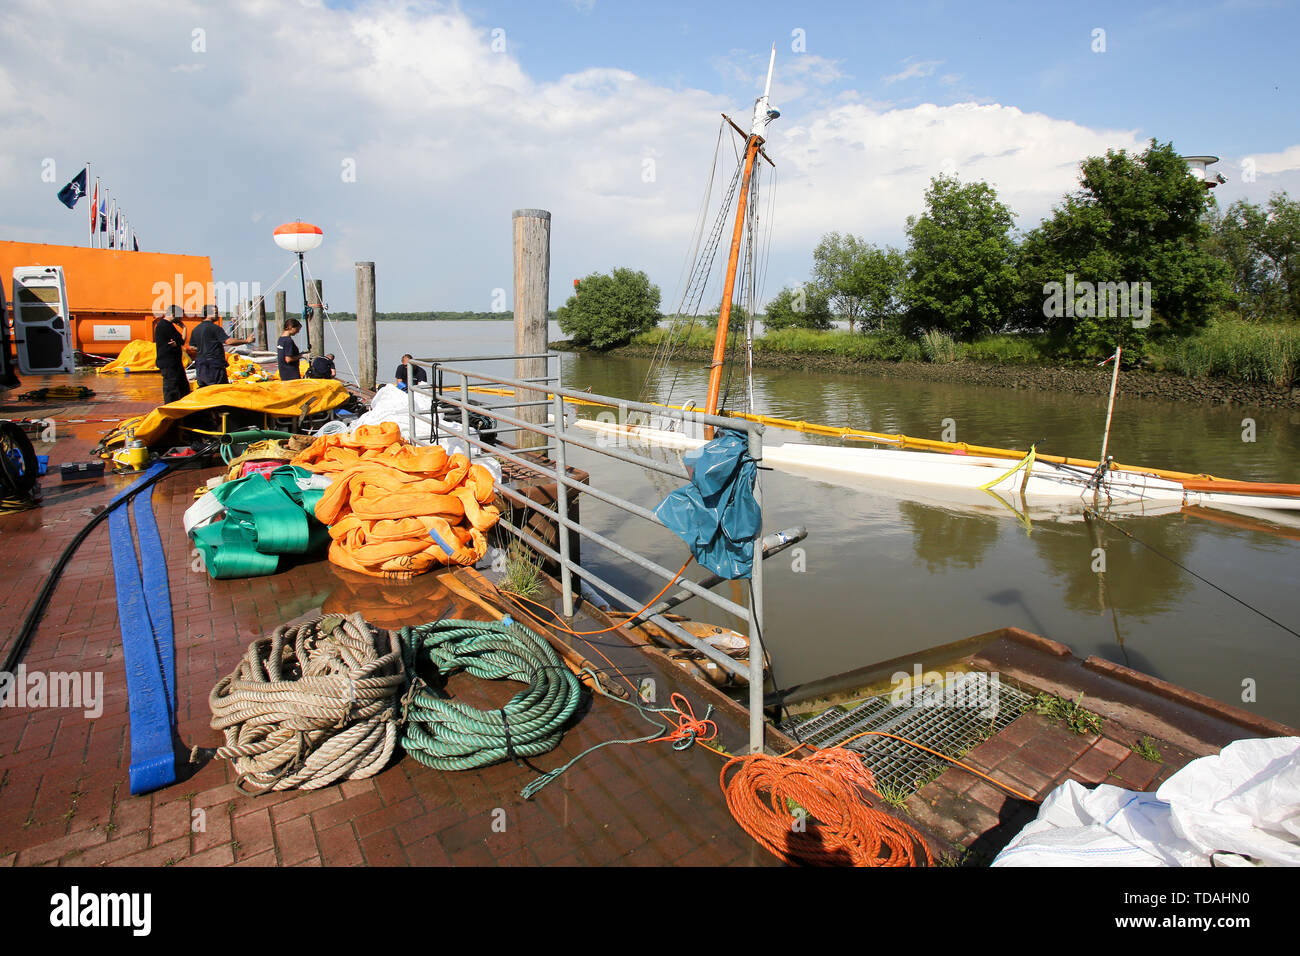 """Stadersand, Germany. 14th June, 2019. Employees of a Spanish company are preparing to salvage the sunken historic sailing ship """"No 5 Elbe"""" in the port of Stadersand. The historic sailing ship, which has only recently been extensively renovated, collided with a container ship on the Elbe and sank. Credit: Bodo Marks/dpa/Alamy Live News Stock Photo"""